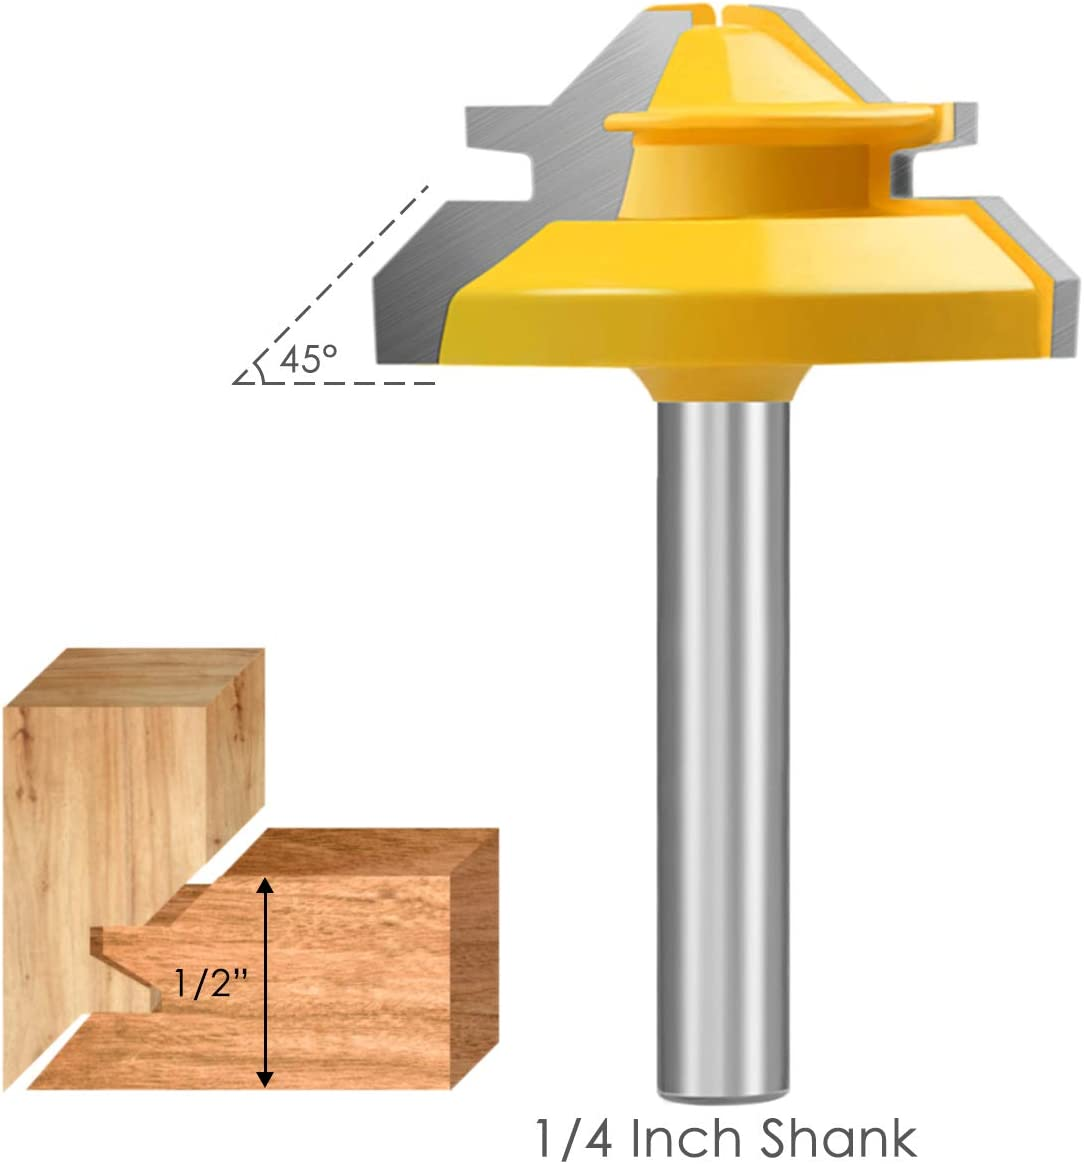 KOWOOD Router bit, 45 Degree Lock Miter Router Bit 1/4 Inch Shank, Professional Wood Cutting Tools,for Commercial Users and Beginners